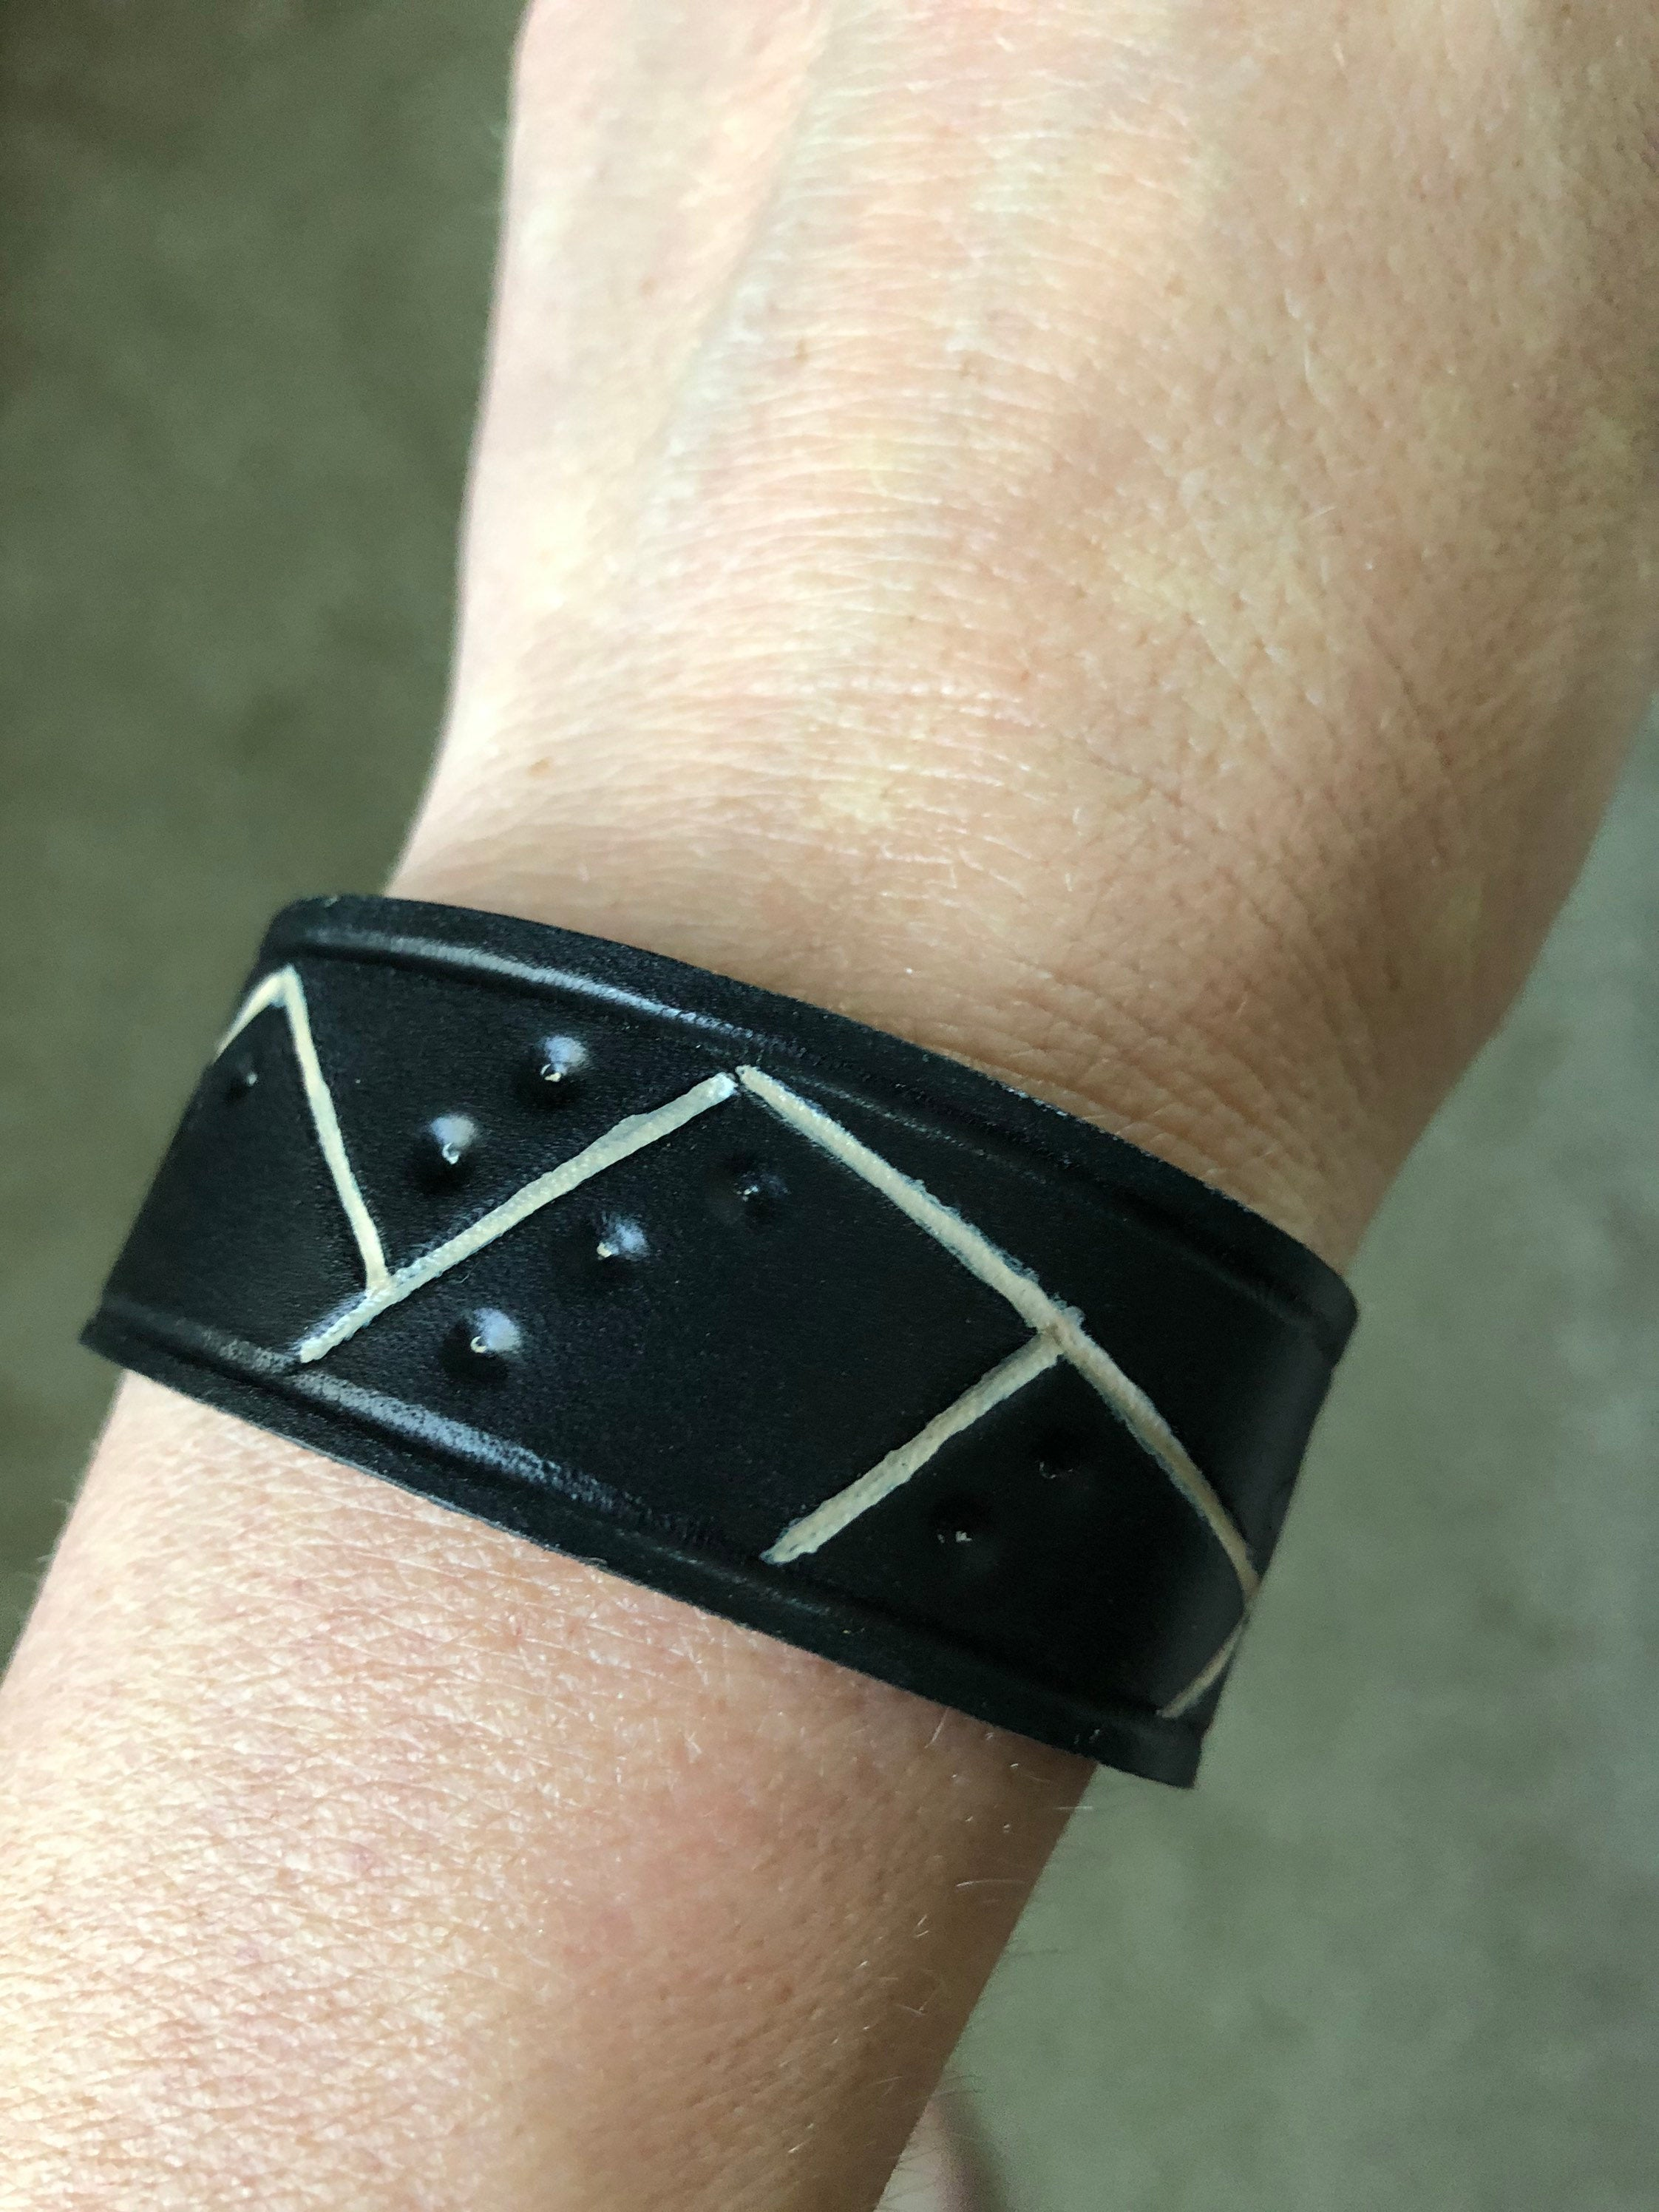 Black leather cuff bracelet with tan painted lines and circular embossed detail shown on wrist